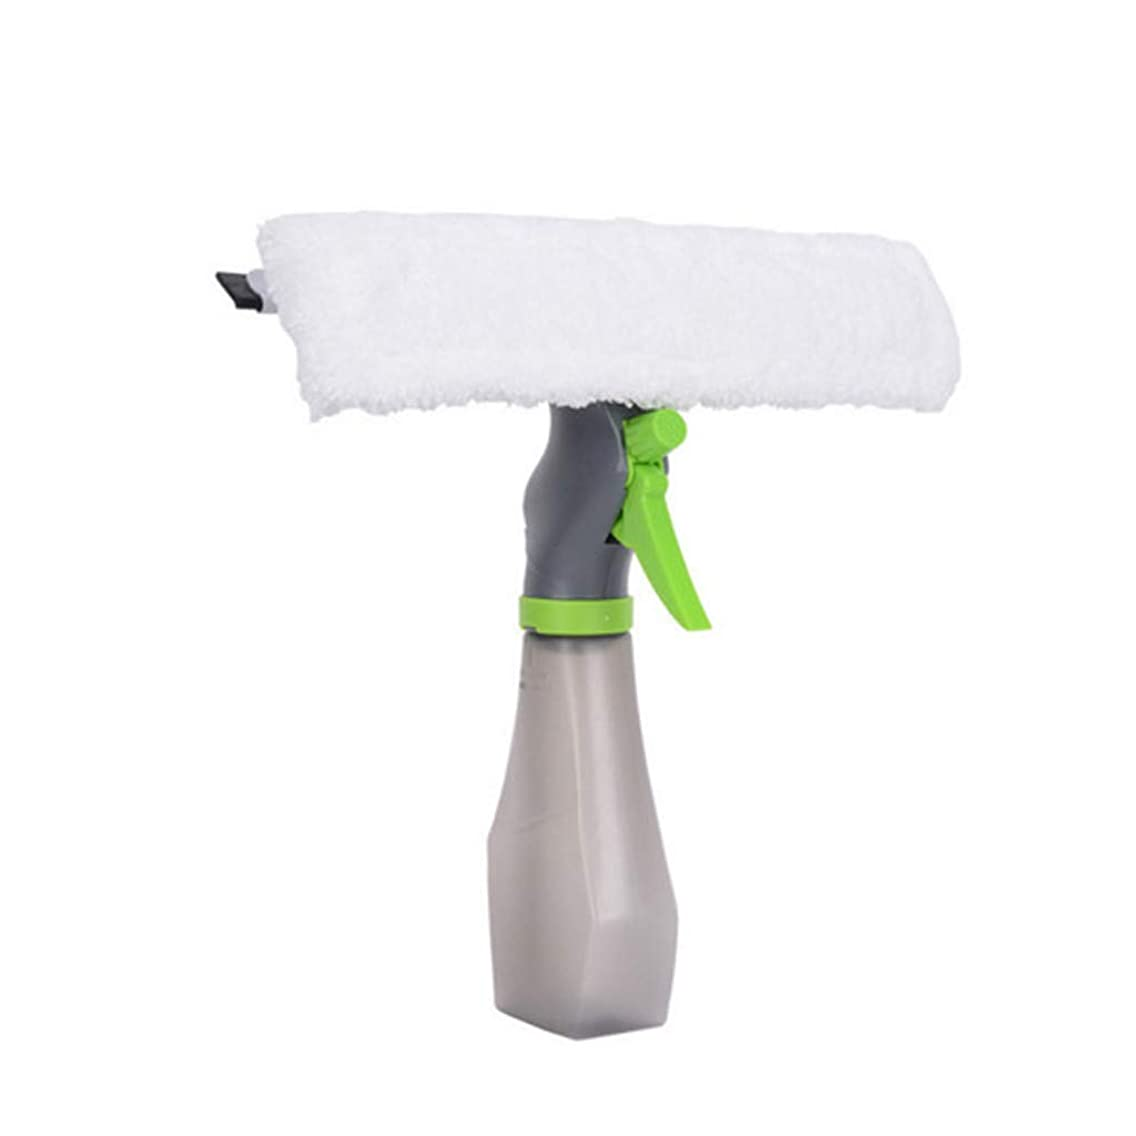 ?BBtime?3 in 1 Window Cleaner Auto Car Spray Bottle Wiper Squeegee Vehicle Windshield Wiper Blade Microfibre Cloth Pad Kit Indoor & Outdoor Window Cleaner Tool for House Shower Car - hot sale (White)